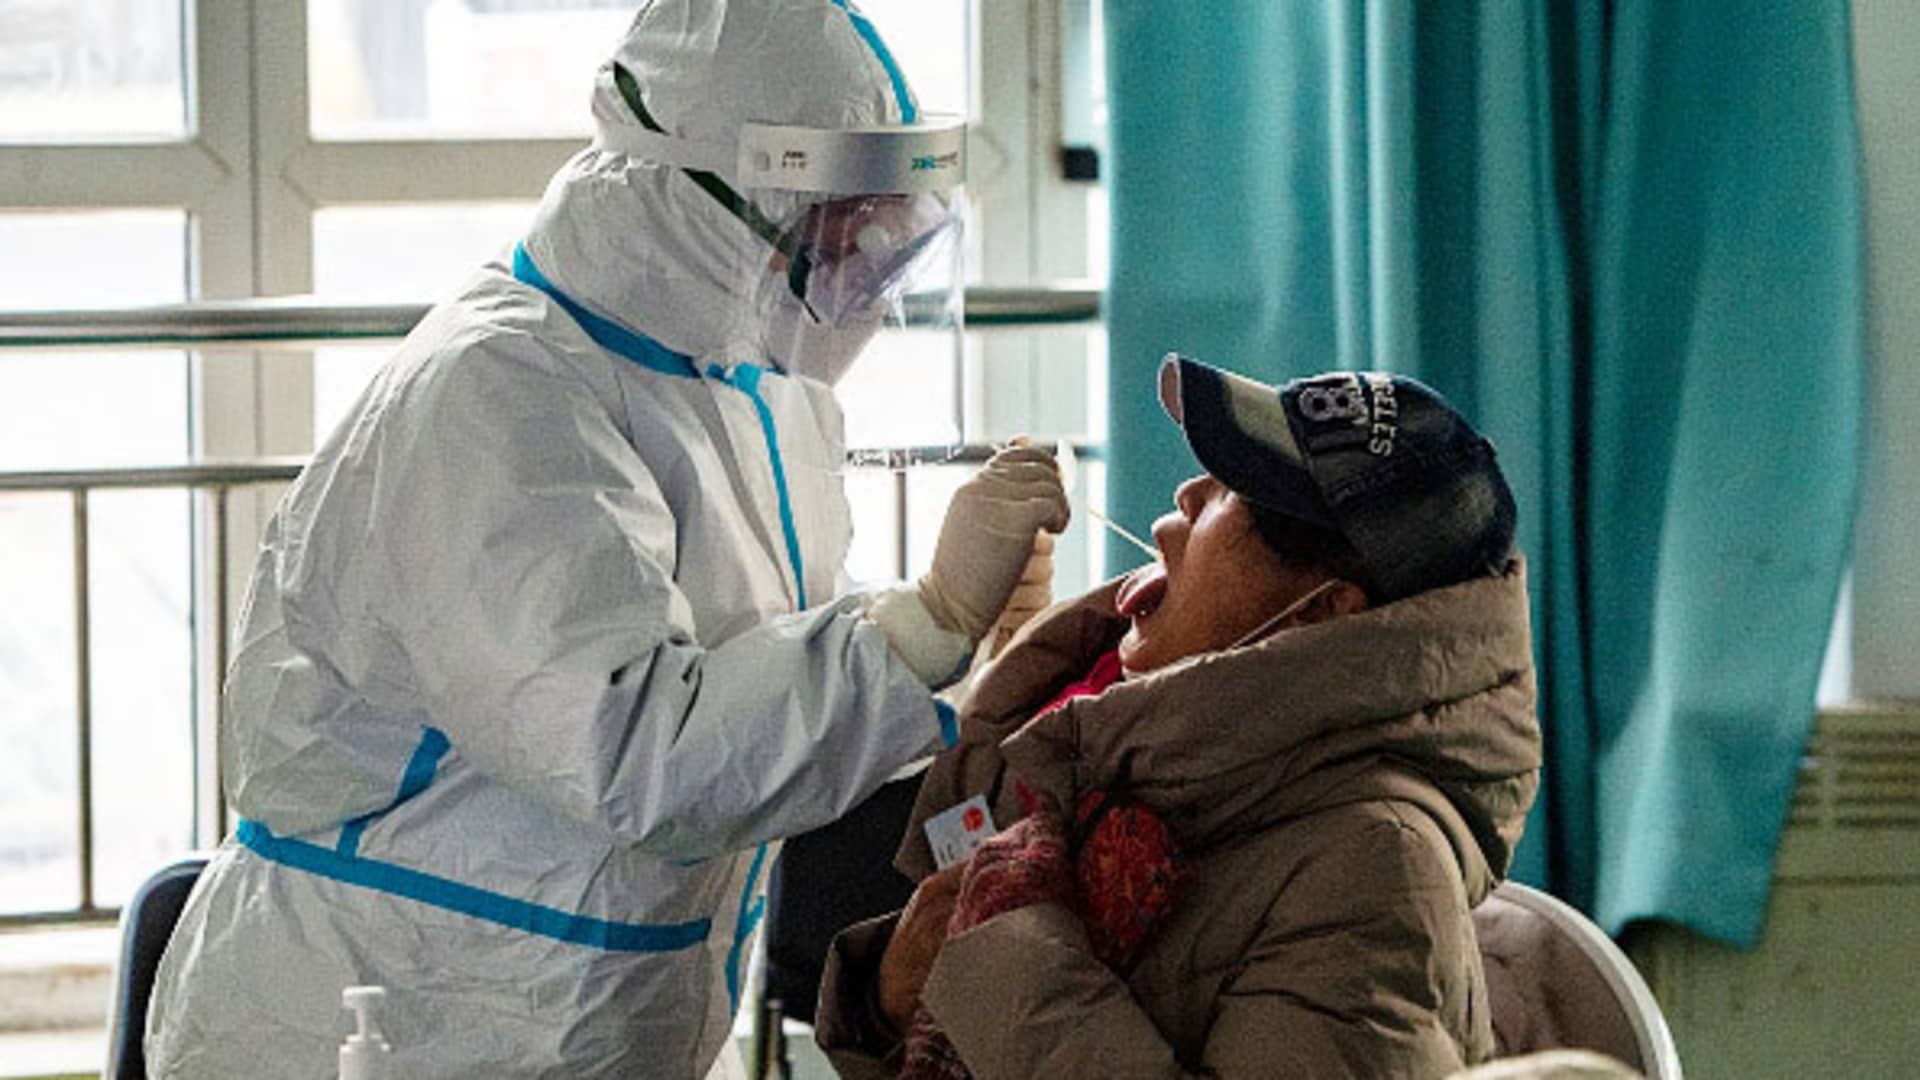 A medical worker wearing a protective suit collects a throat swab from a local resident for Covid-19 antigen rapid test at a temporary testing center on Jan. 6, 2021 in Shijiazhuang, Hebei Province of China.